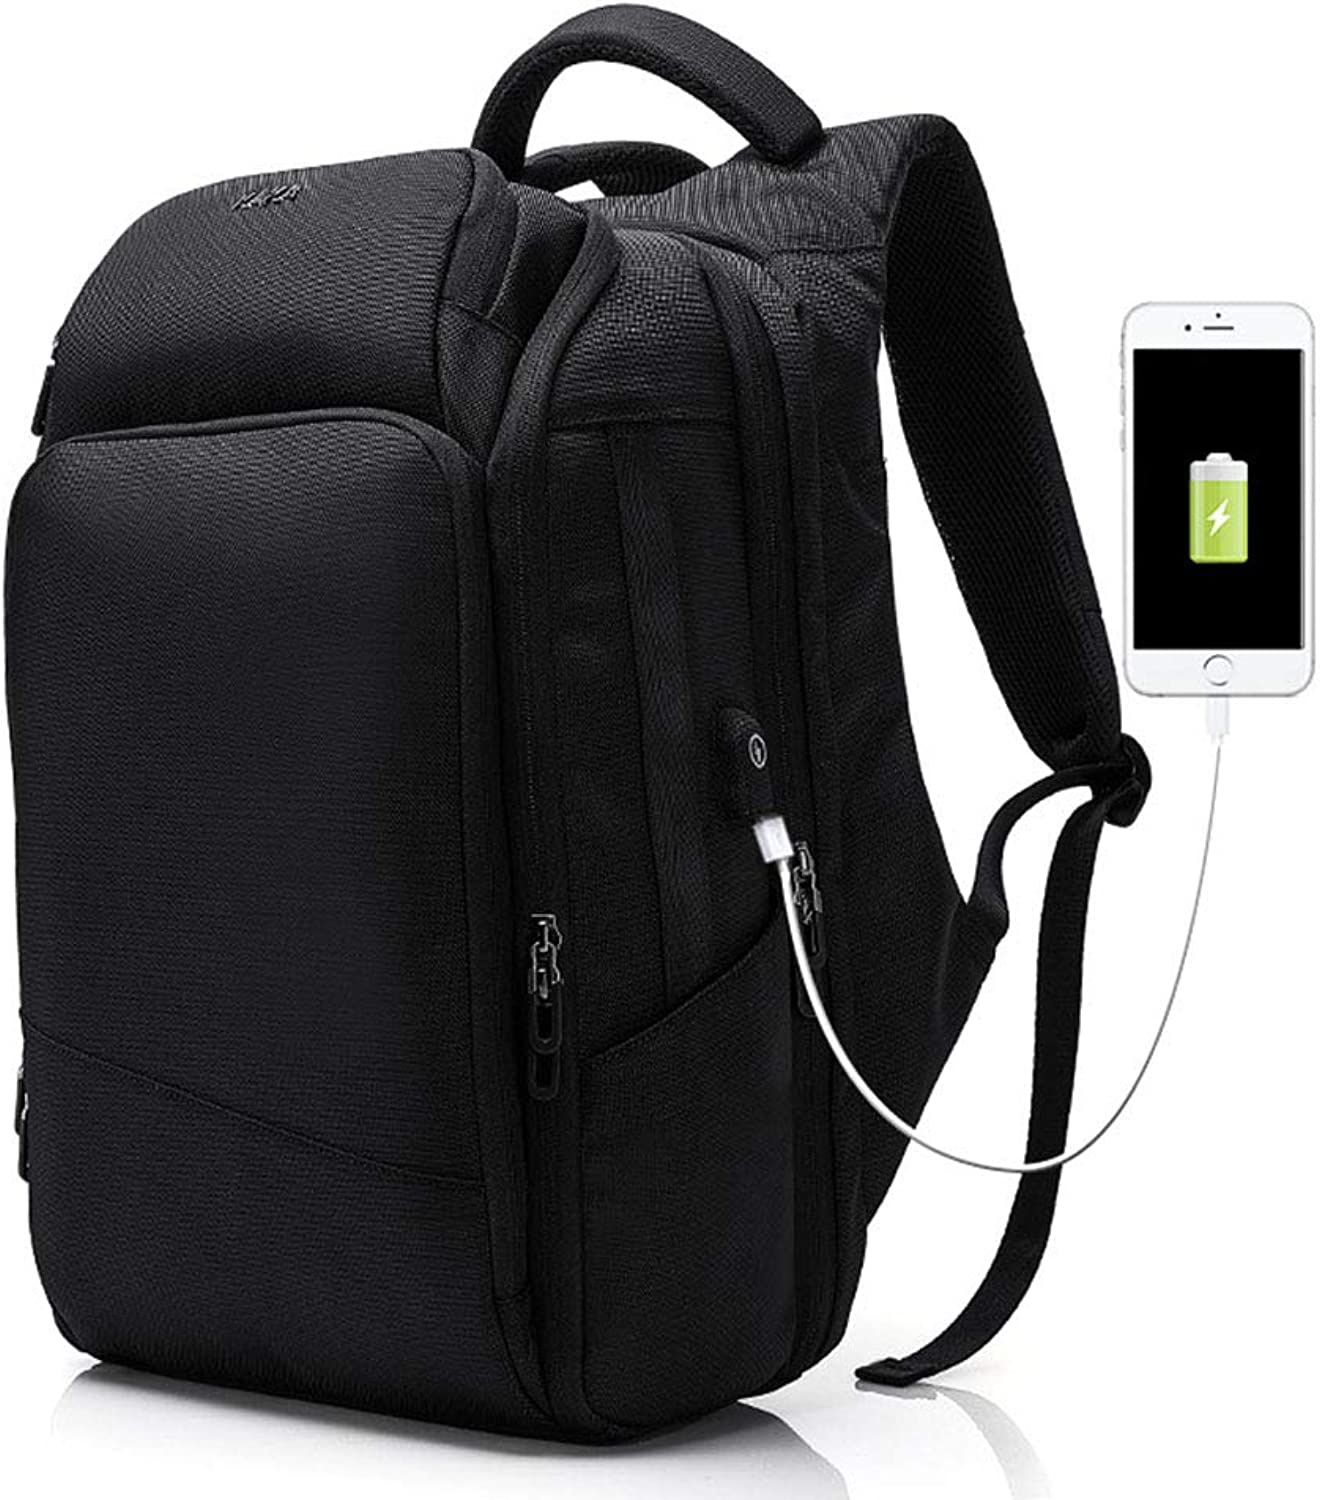 8f322c06812a Large-Capacity Outdoor Travel Backpack, Backpack, Backpack ...